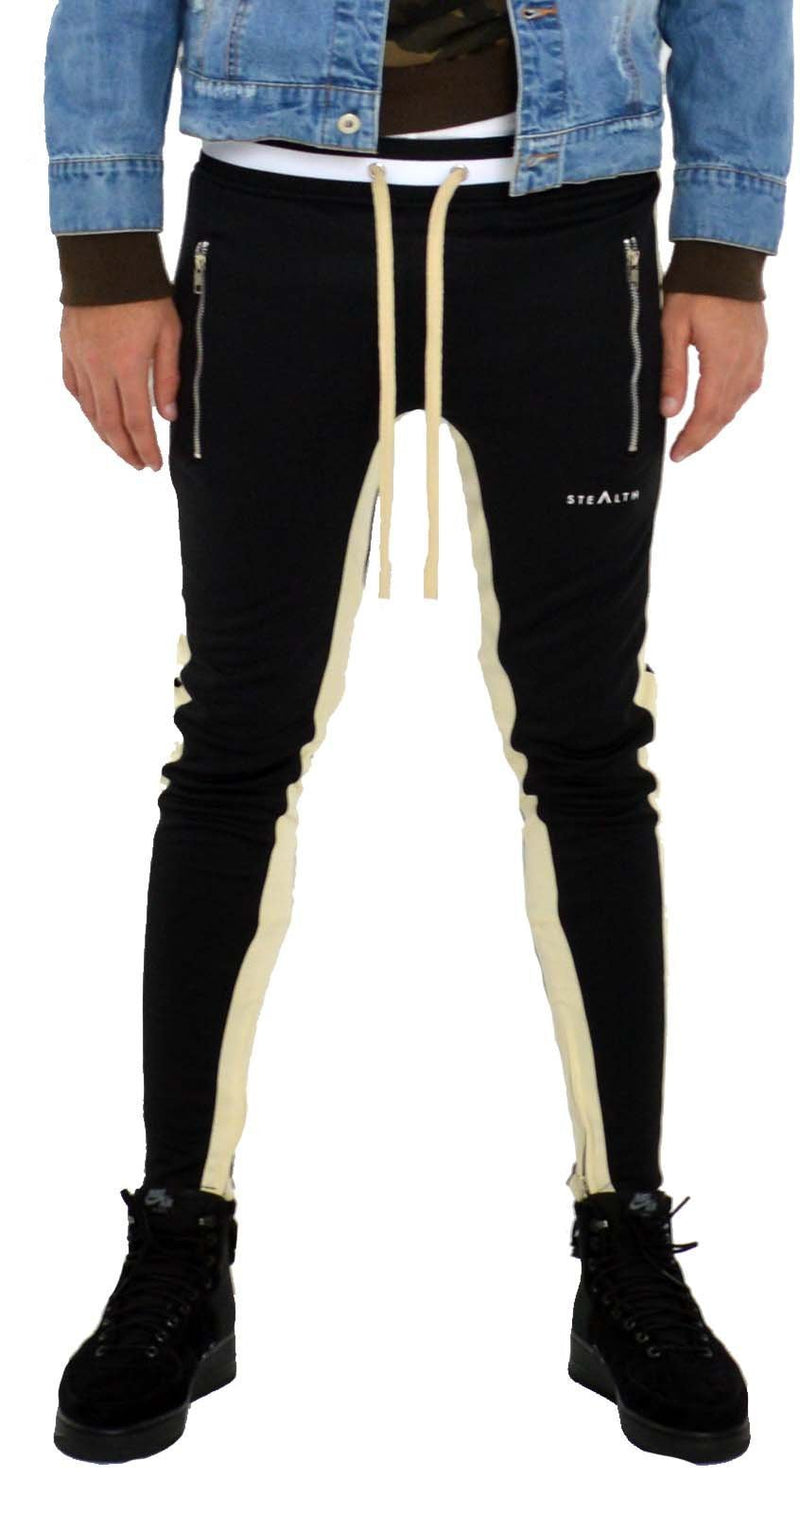 Stealth London Clothing Co Xtra Small  (Slim Fit) Vulcan Track Bottoms (Black/Cream)